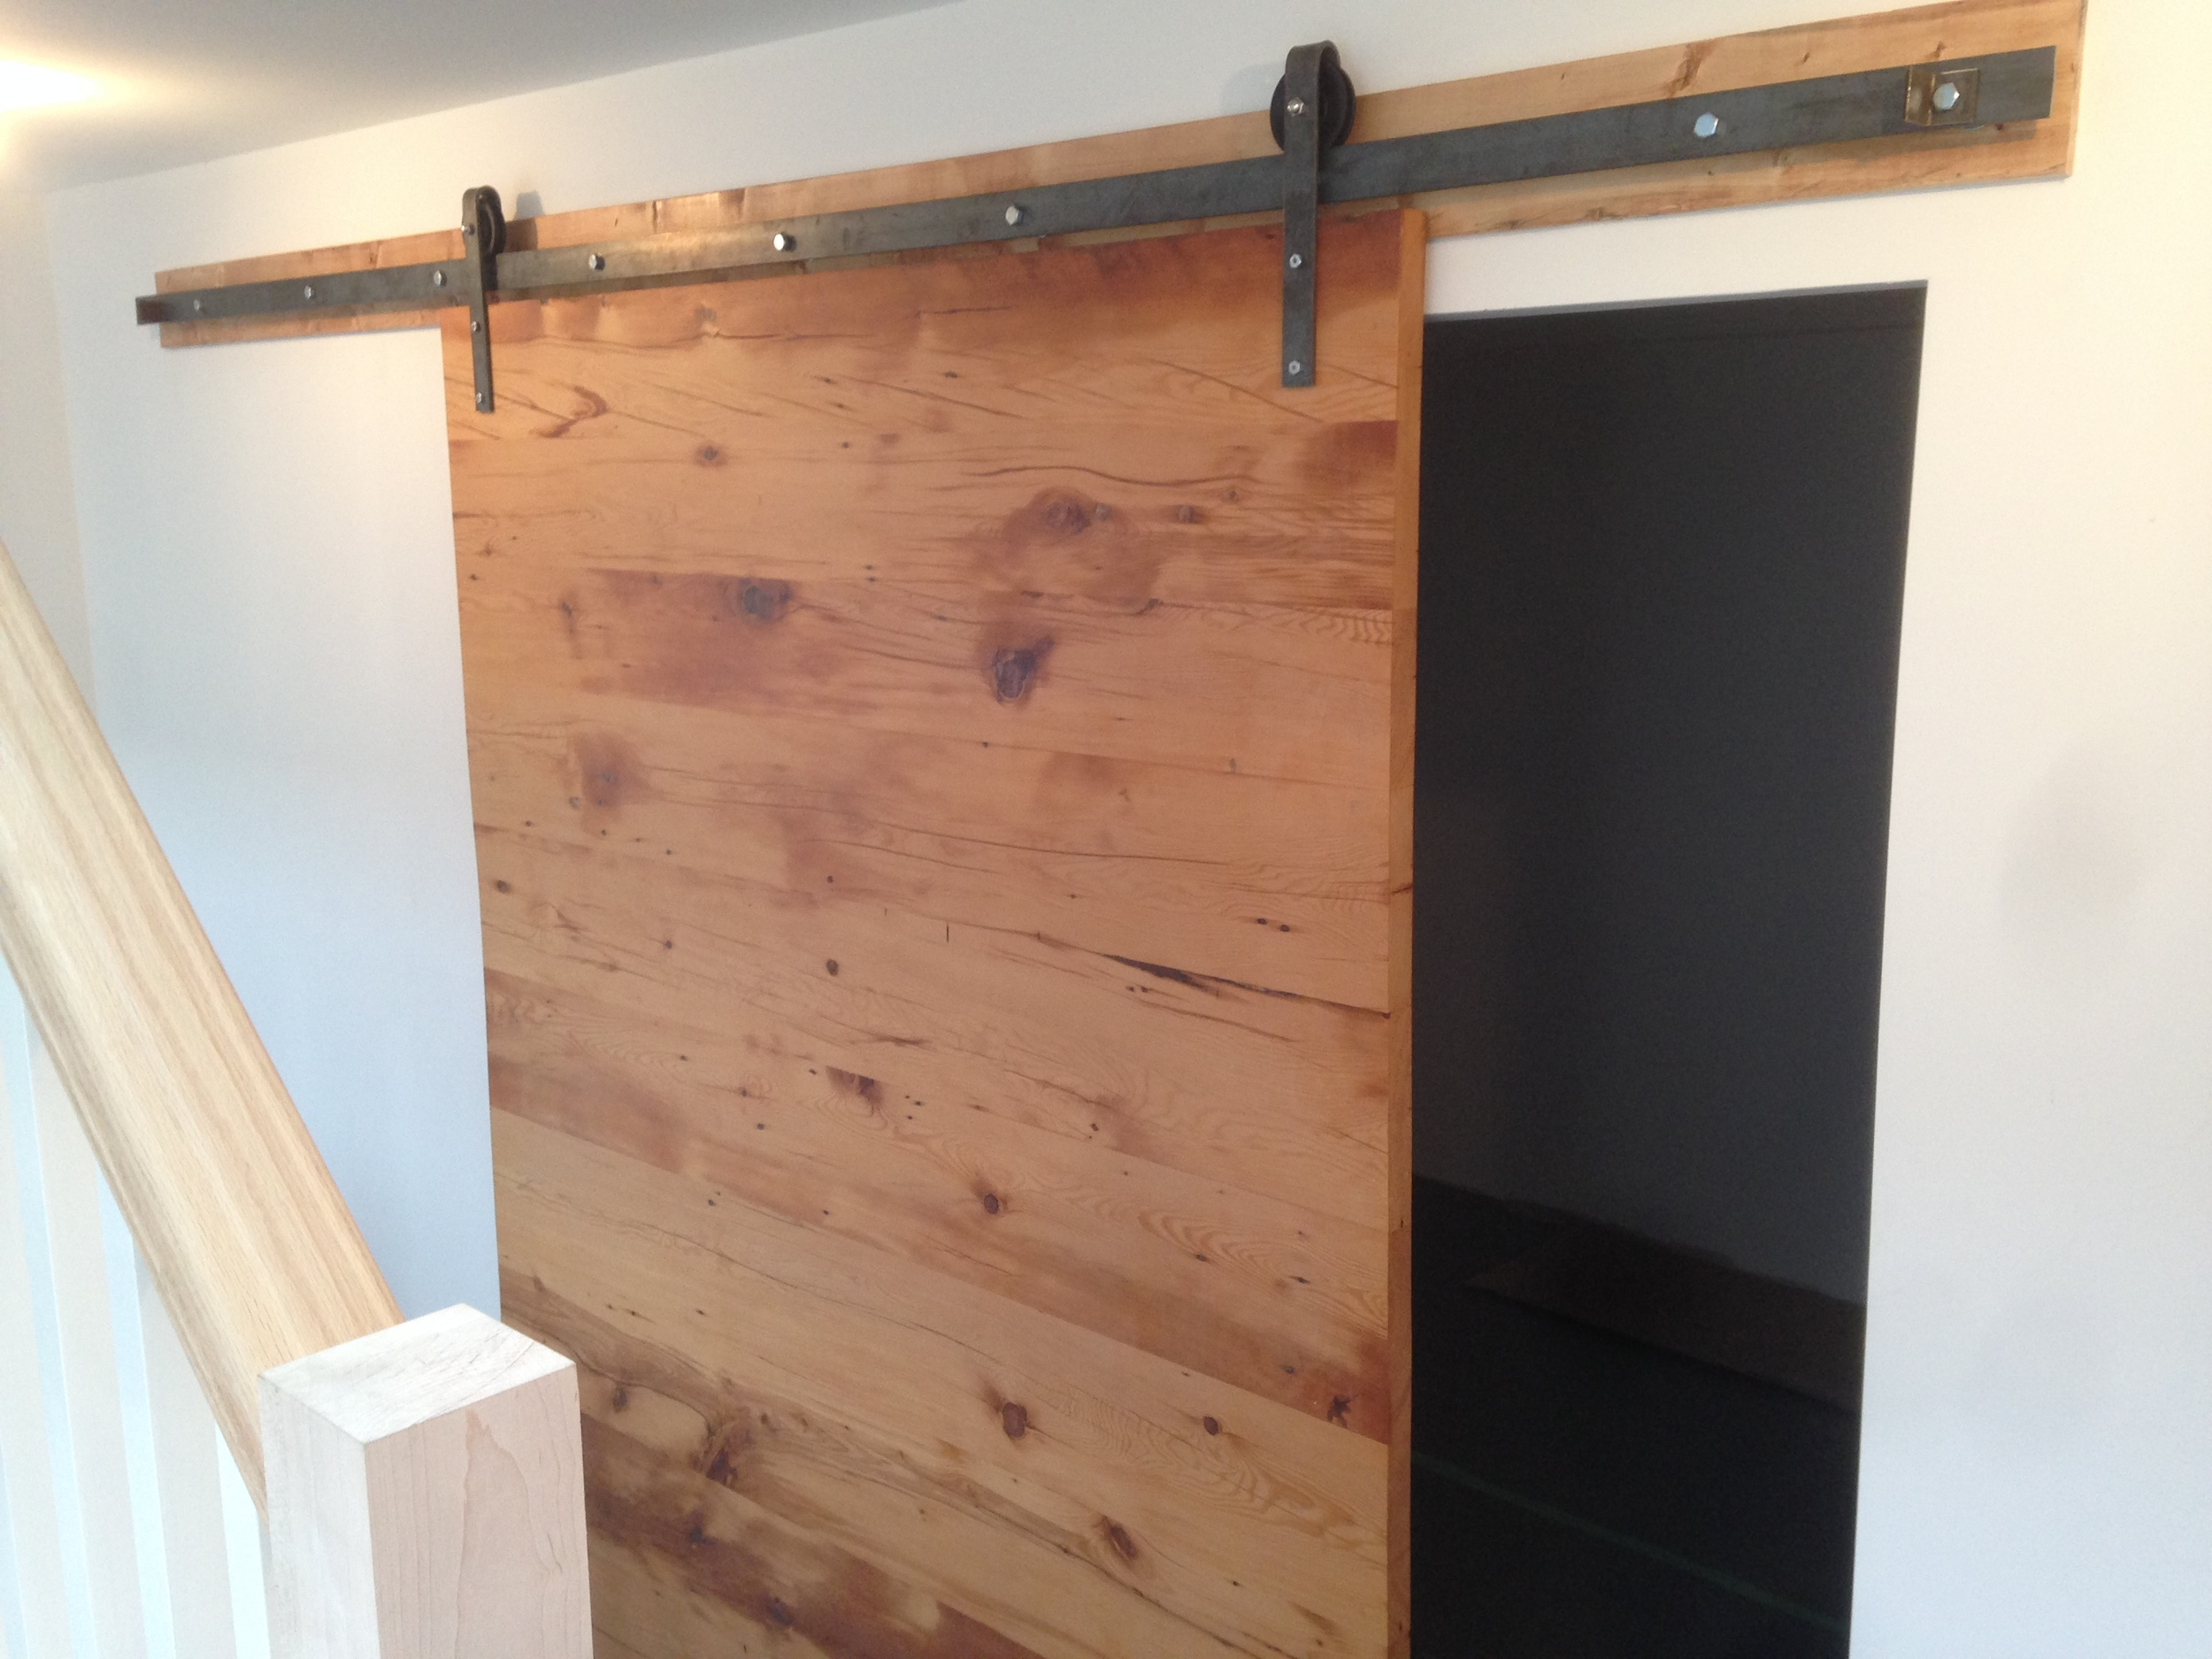 These joists were old old pine. They were milled down to make a slab door, but still retained enough character to speak to the history of the house.